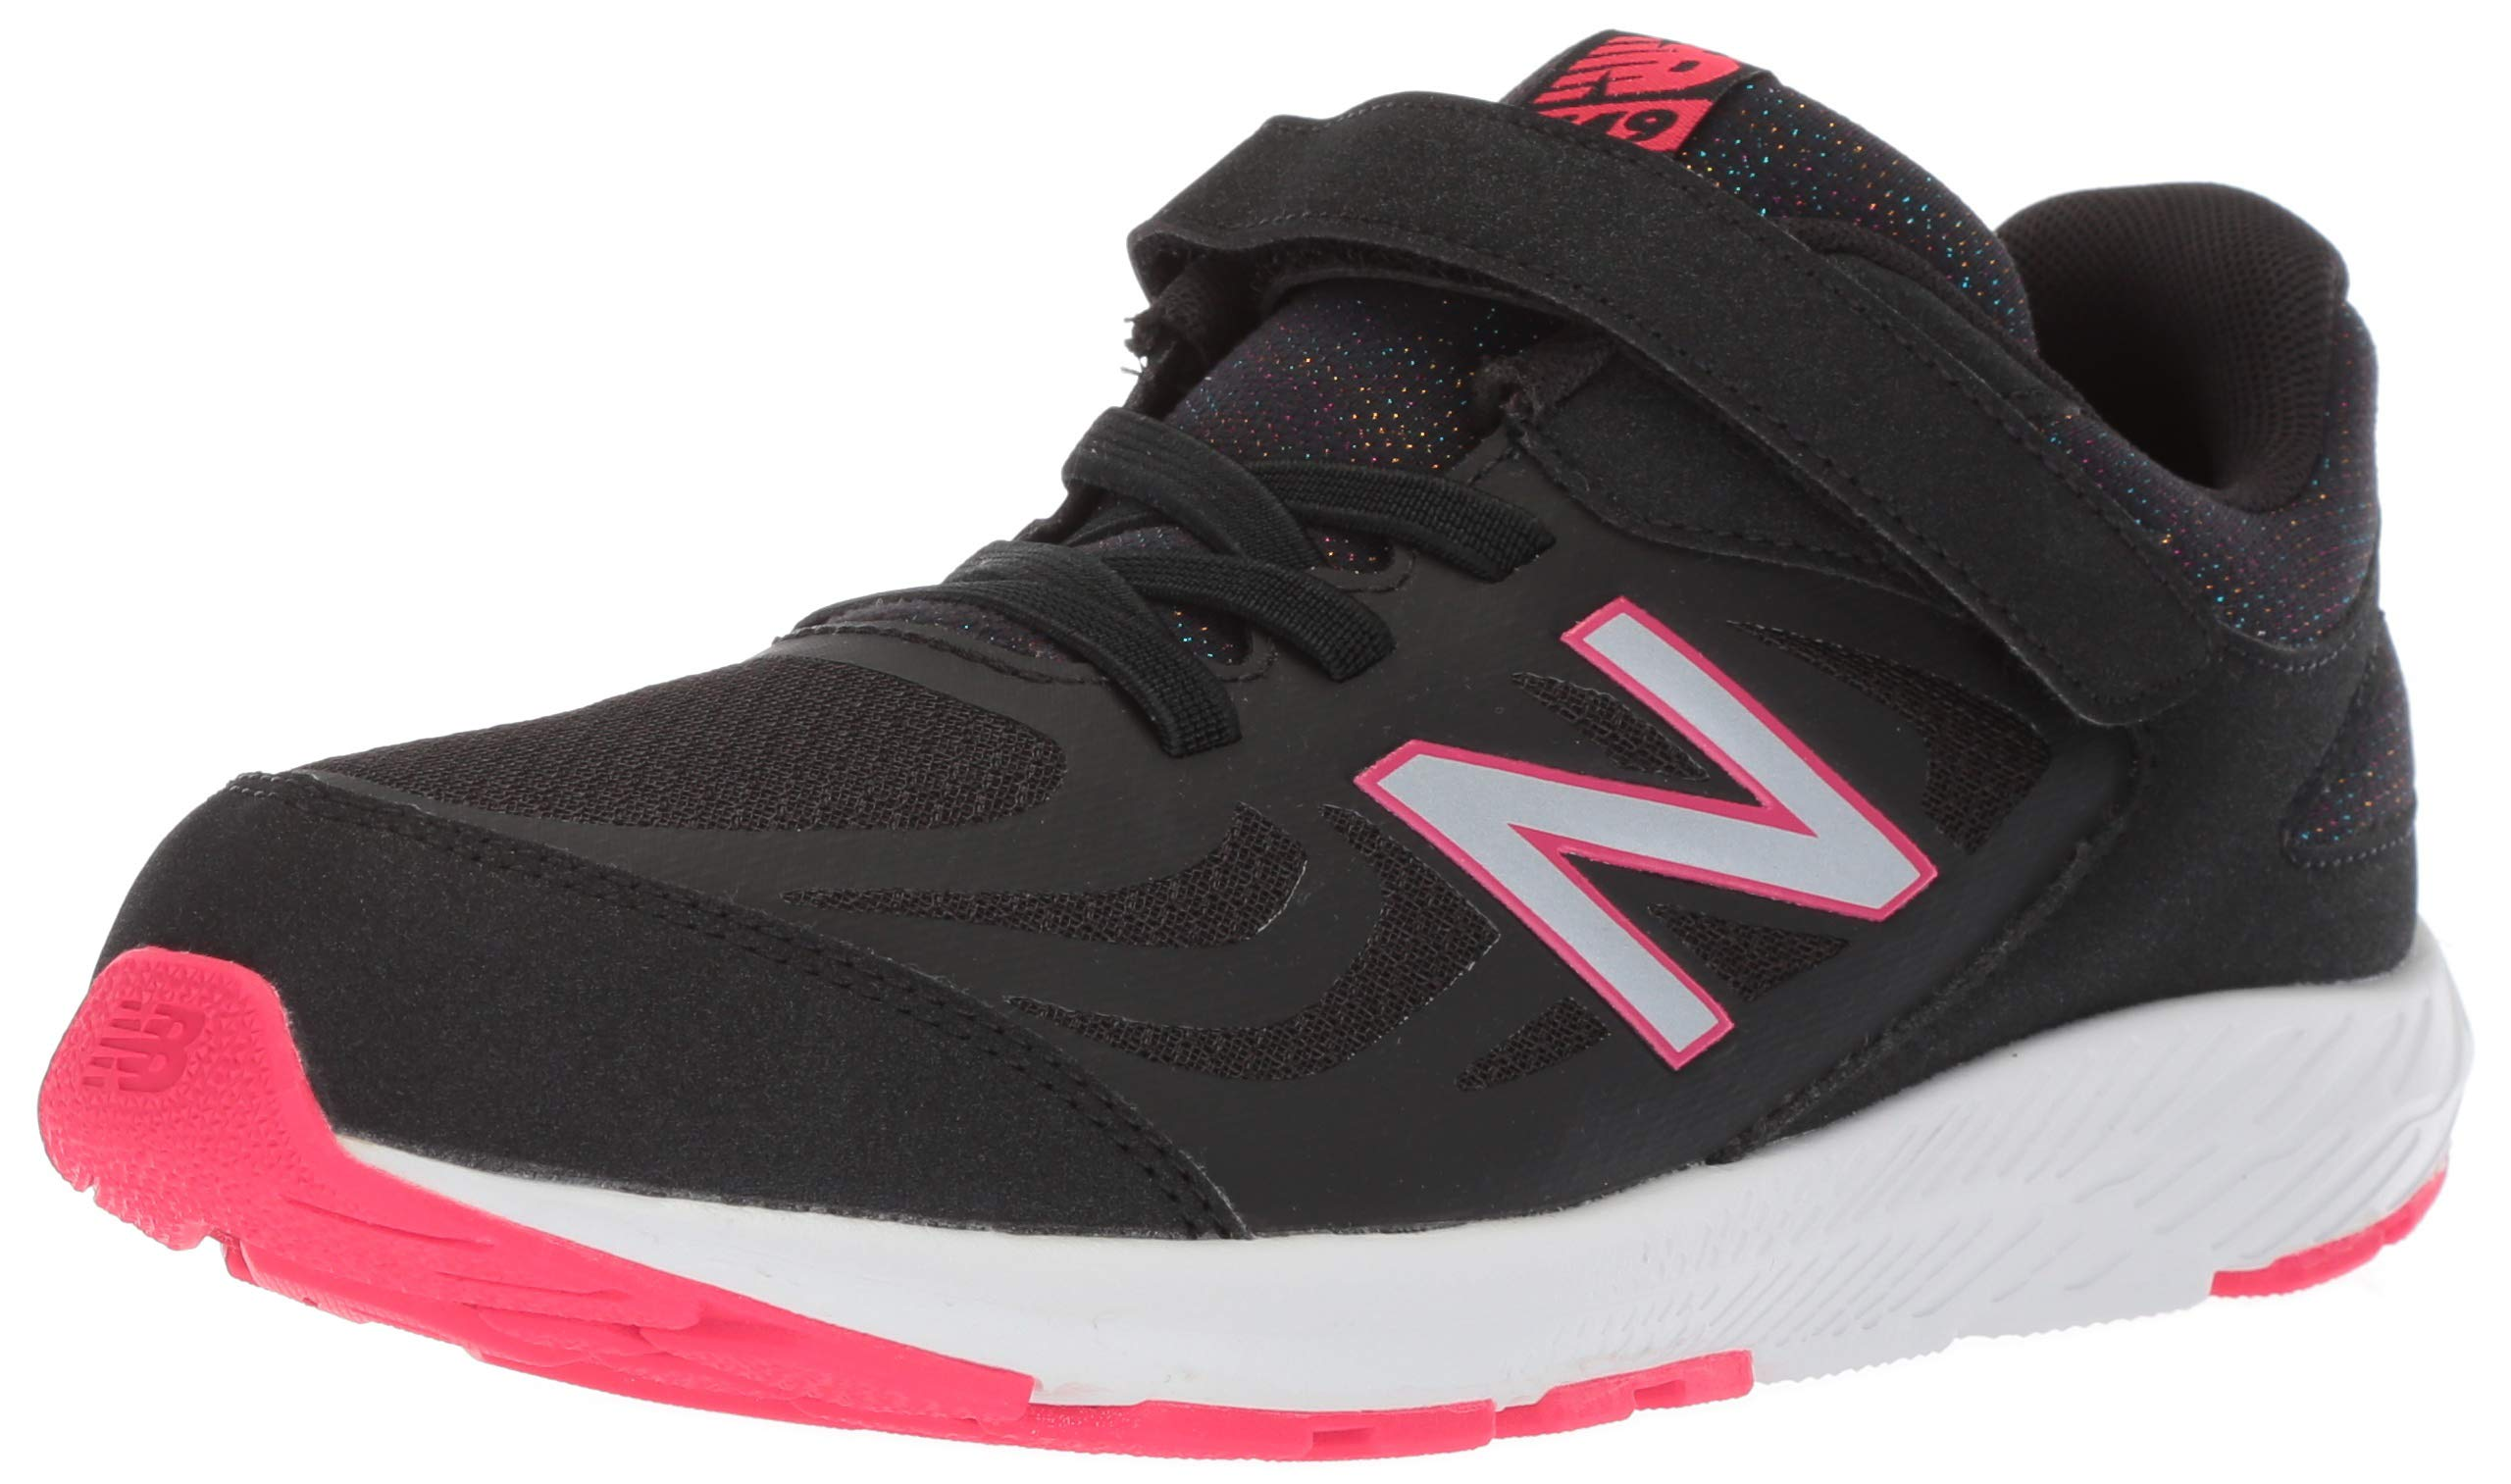 New Balance Girls' 519v1 Hook and Loop Running Shoe Black/Rainbow 2 M US Infant